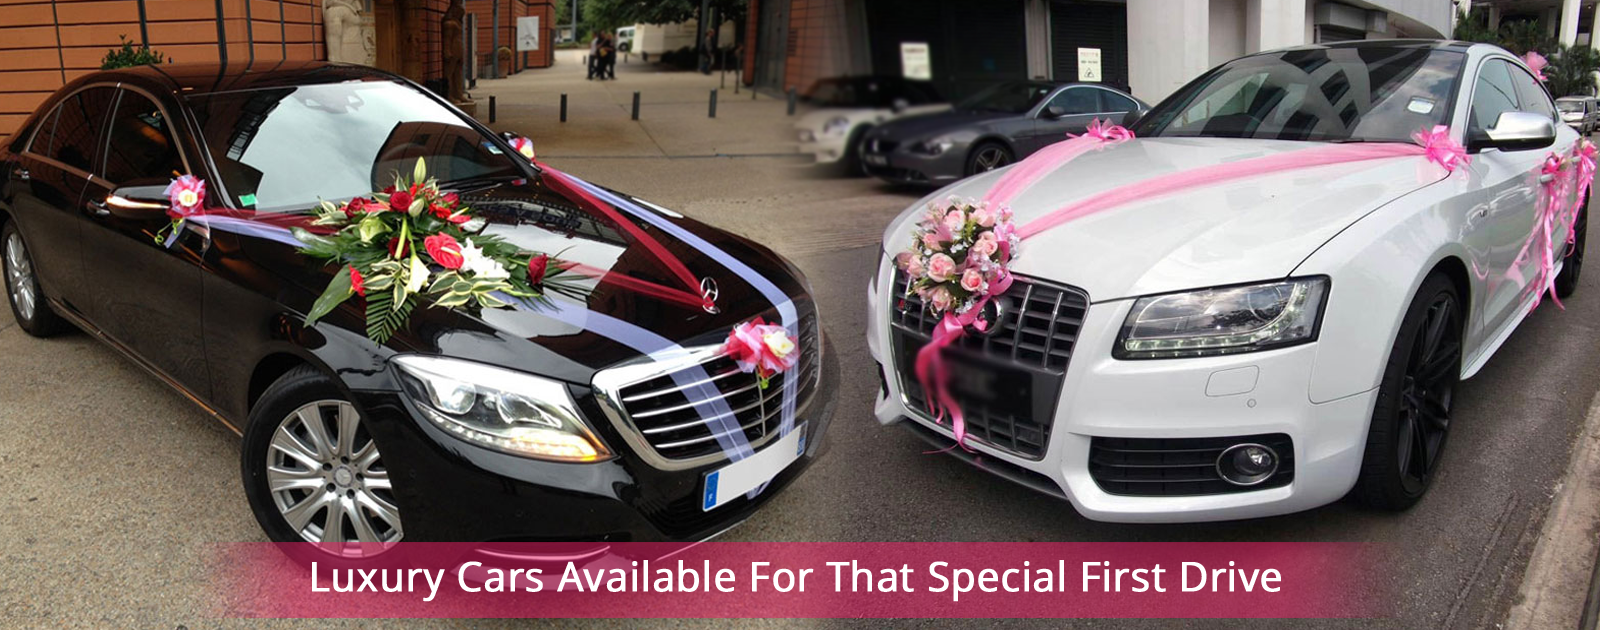 wedding cars on rent in new delhi, wedding car rental in west delhi, wedding transportation in delhi ncr